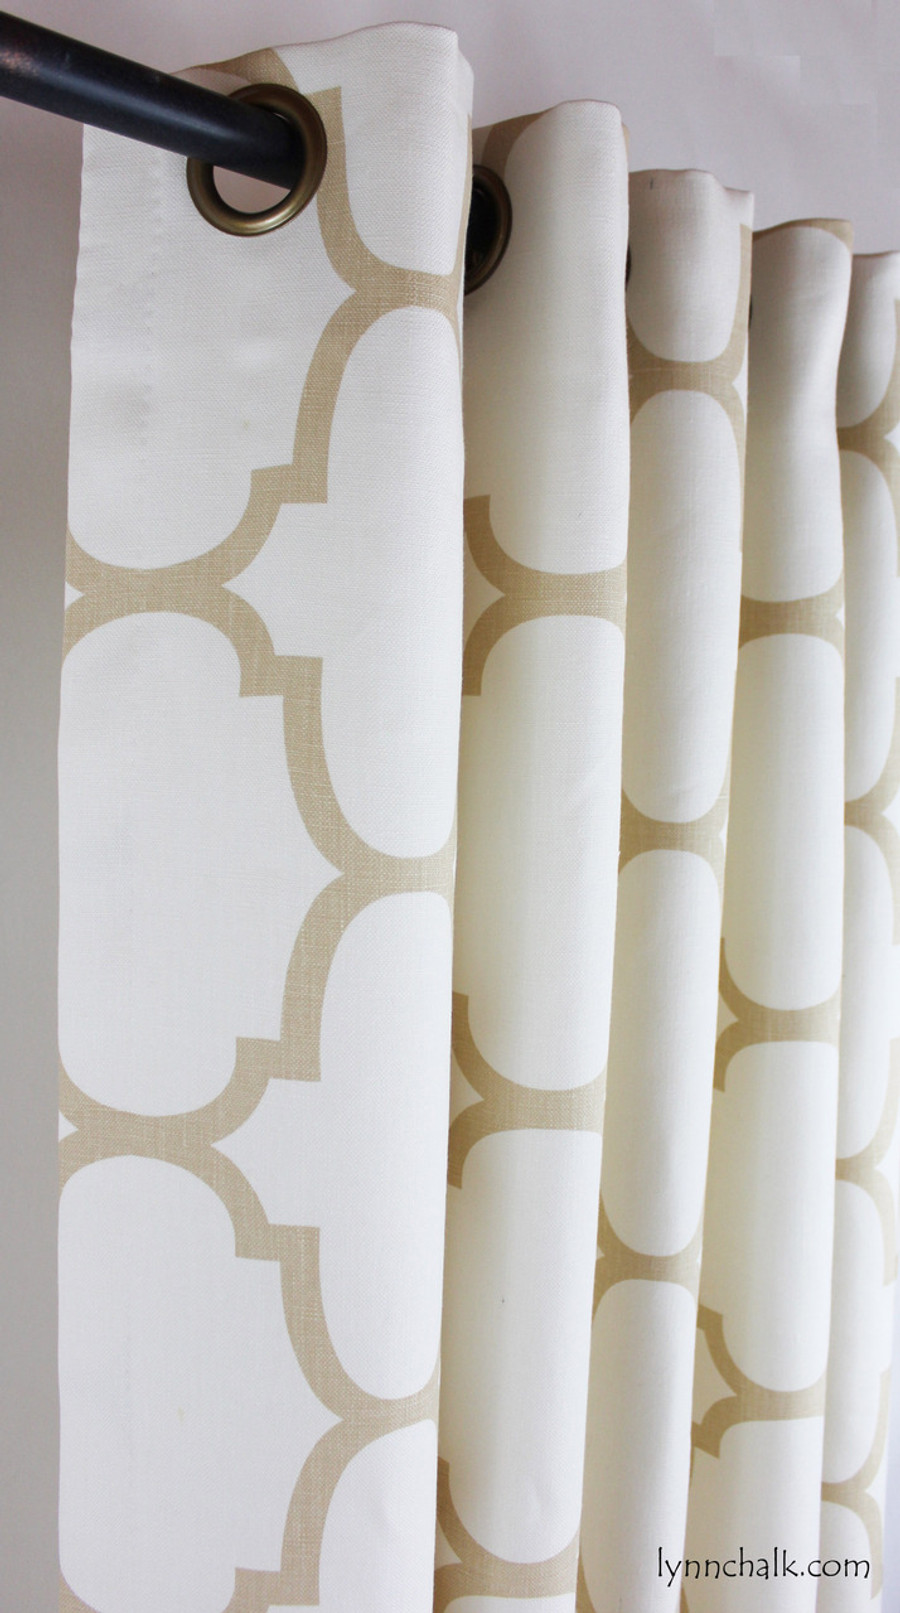 Custom Grommet Drapes by Lynn Chalk in Windsor Smith Riad Beige/Ivory